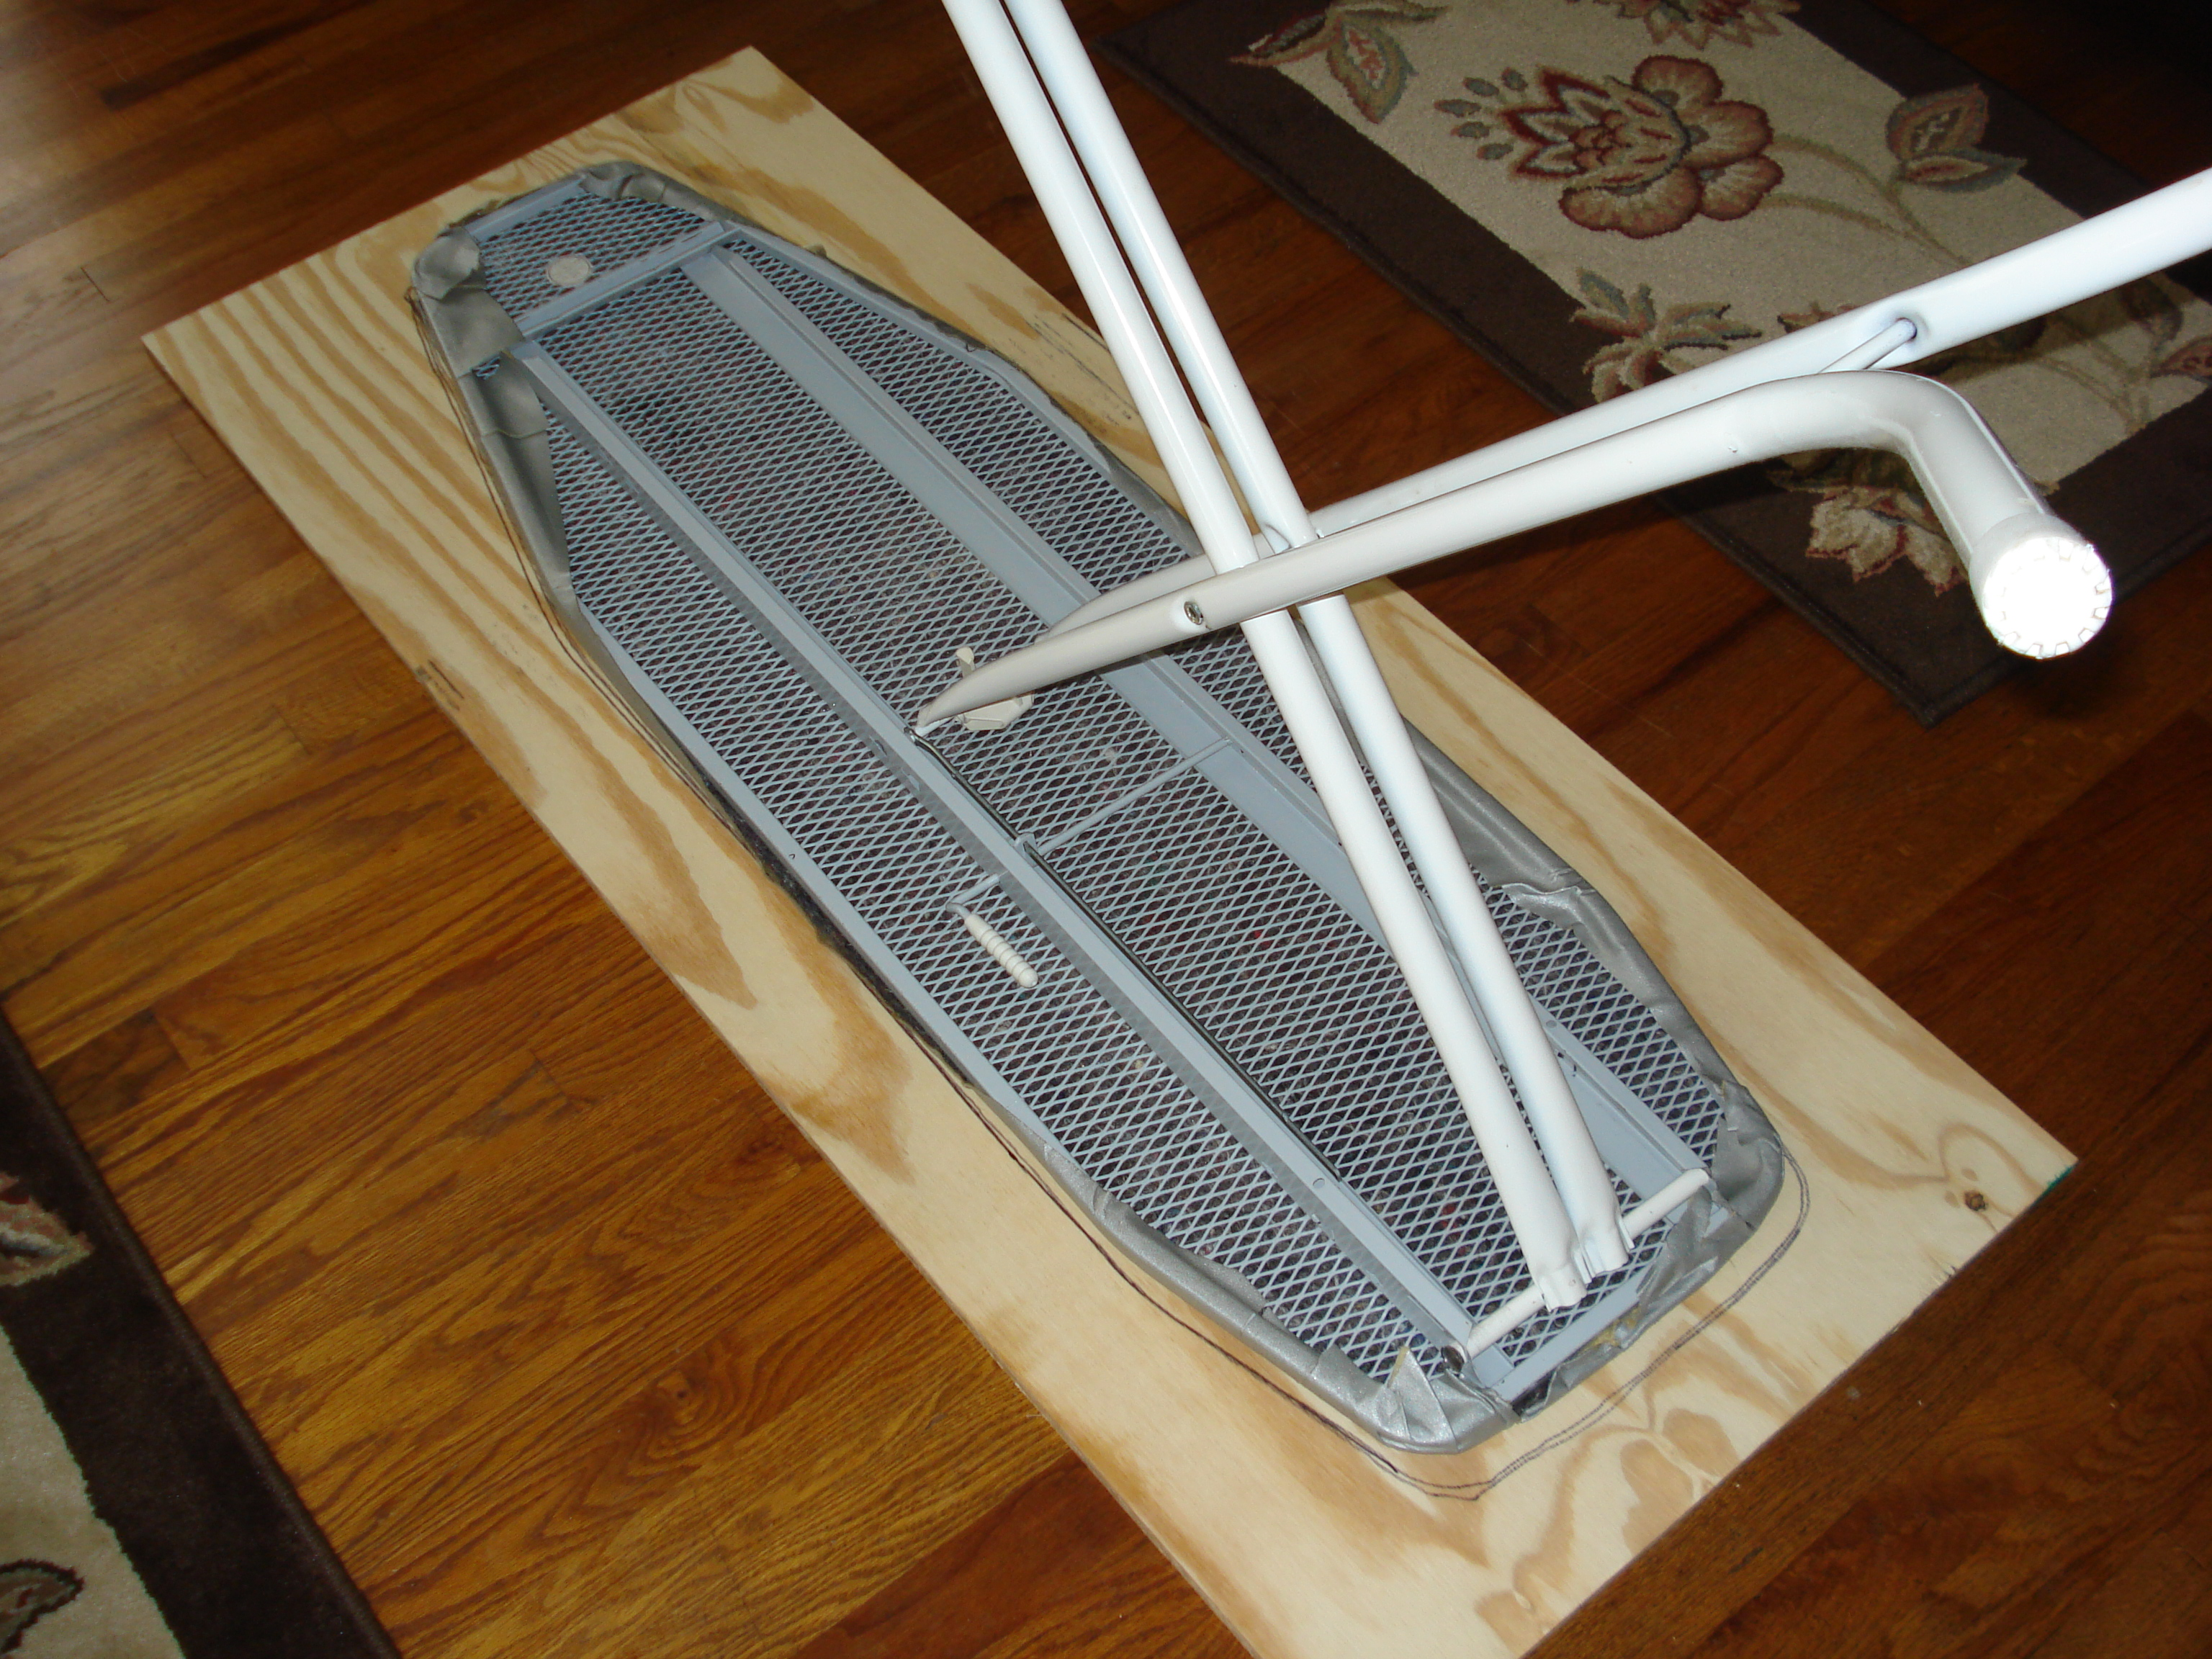 Woodworking Plans Ironing Board With Simple Inspiration | egorlin.com : wide ironing board for quilting - Adamdwight.com